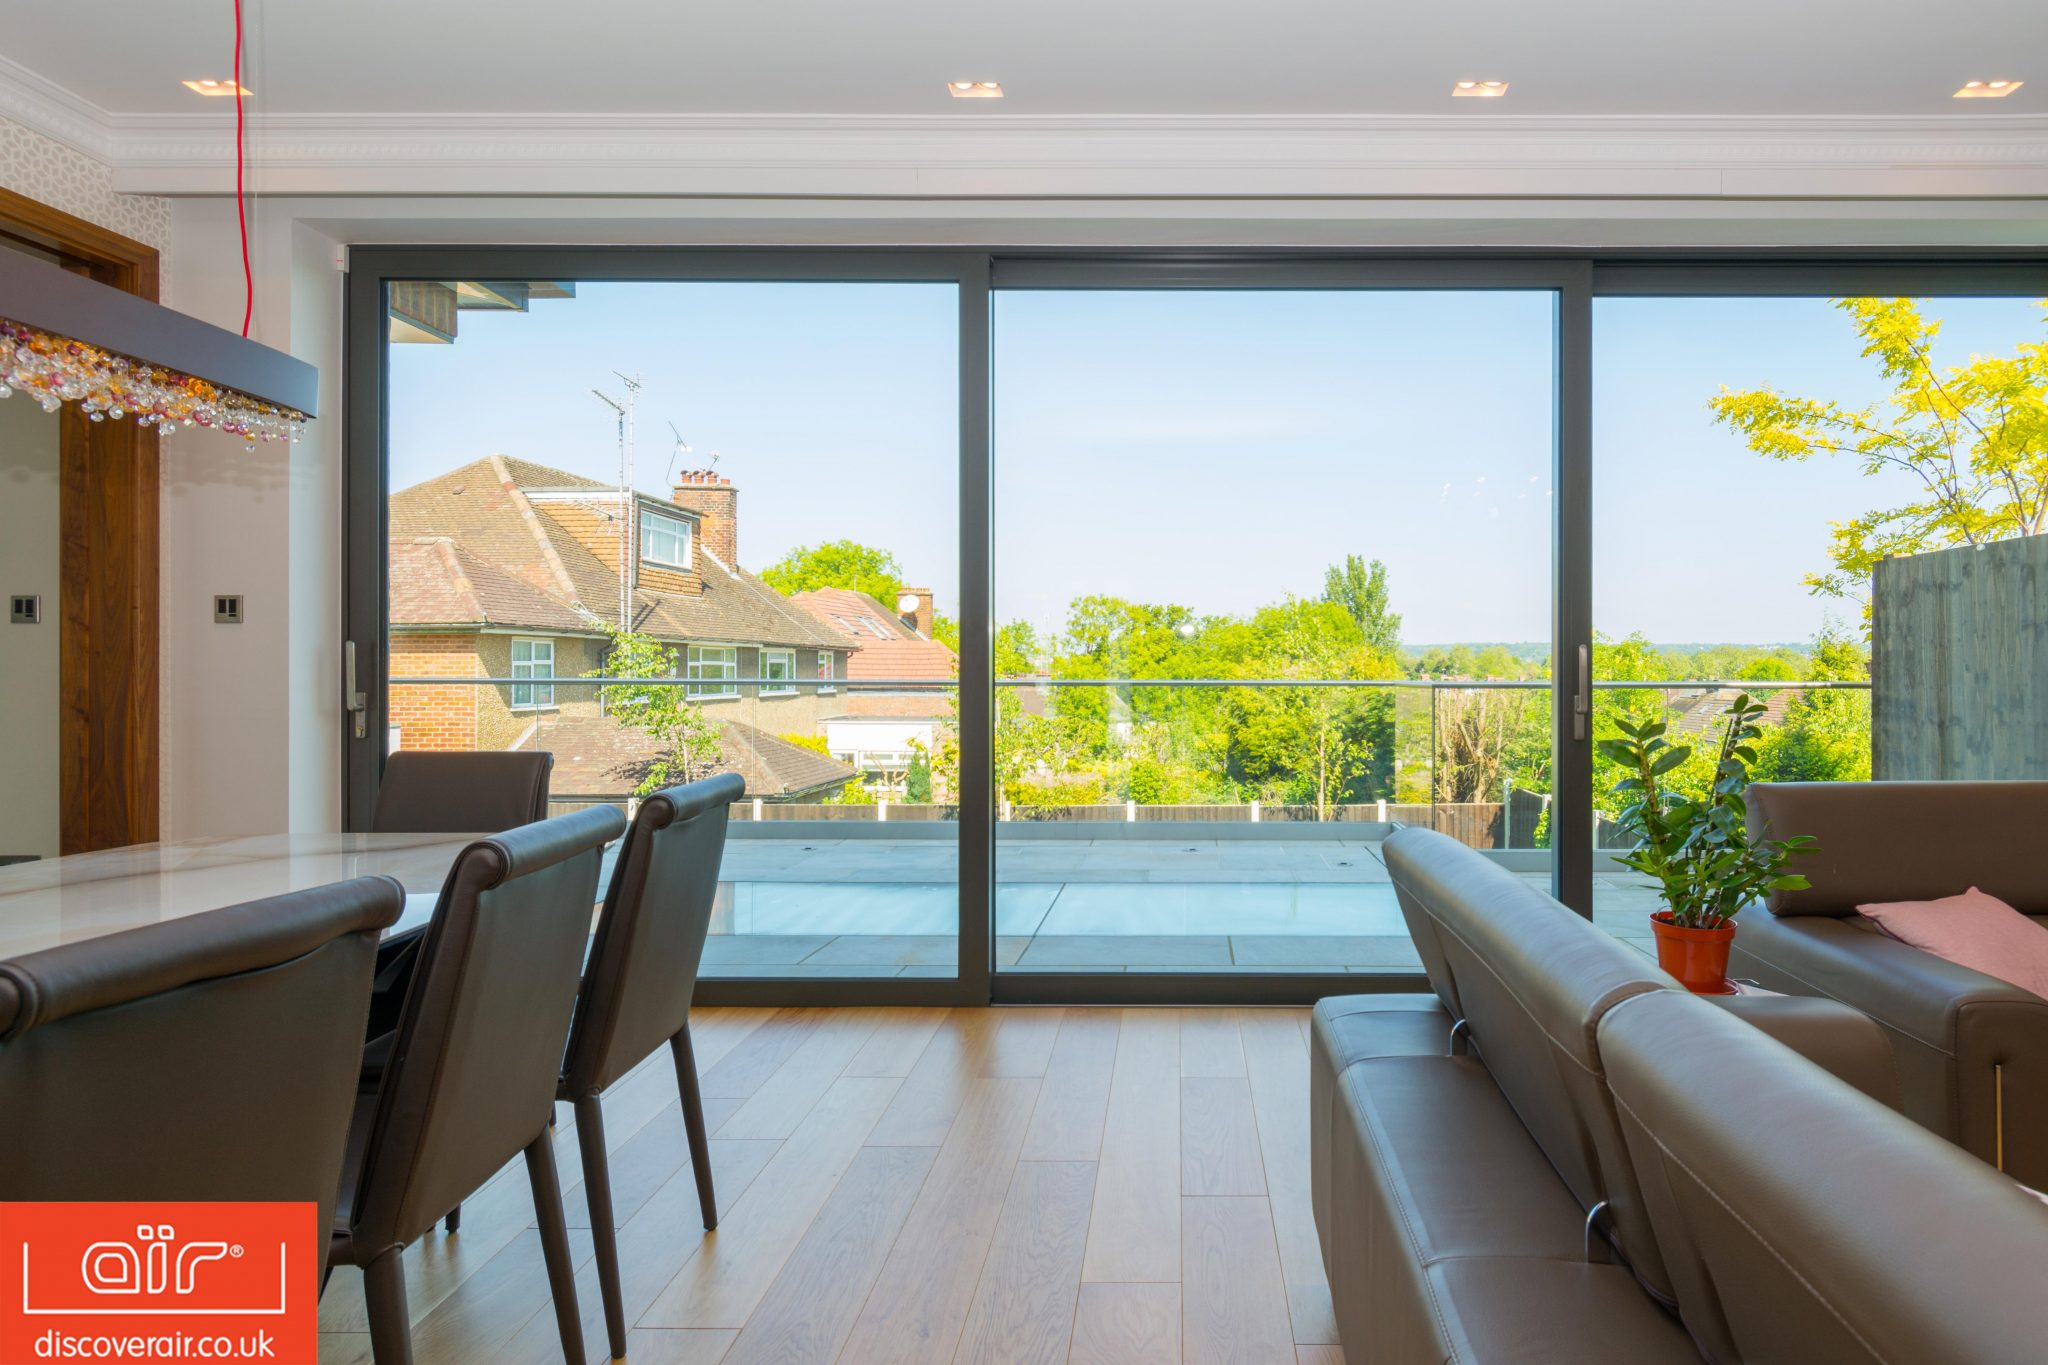 reasons to choose discover air lift and slide doors